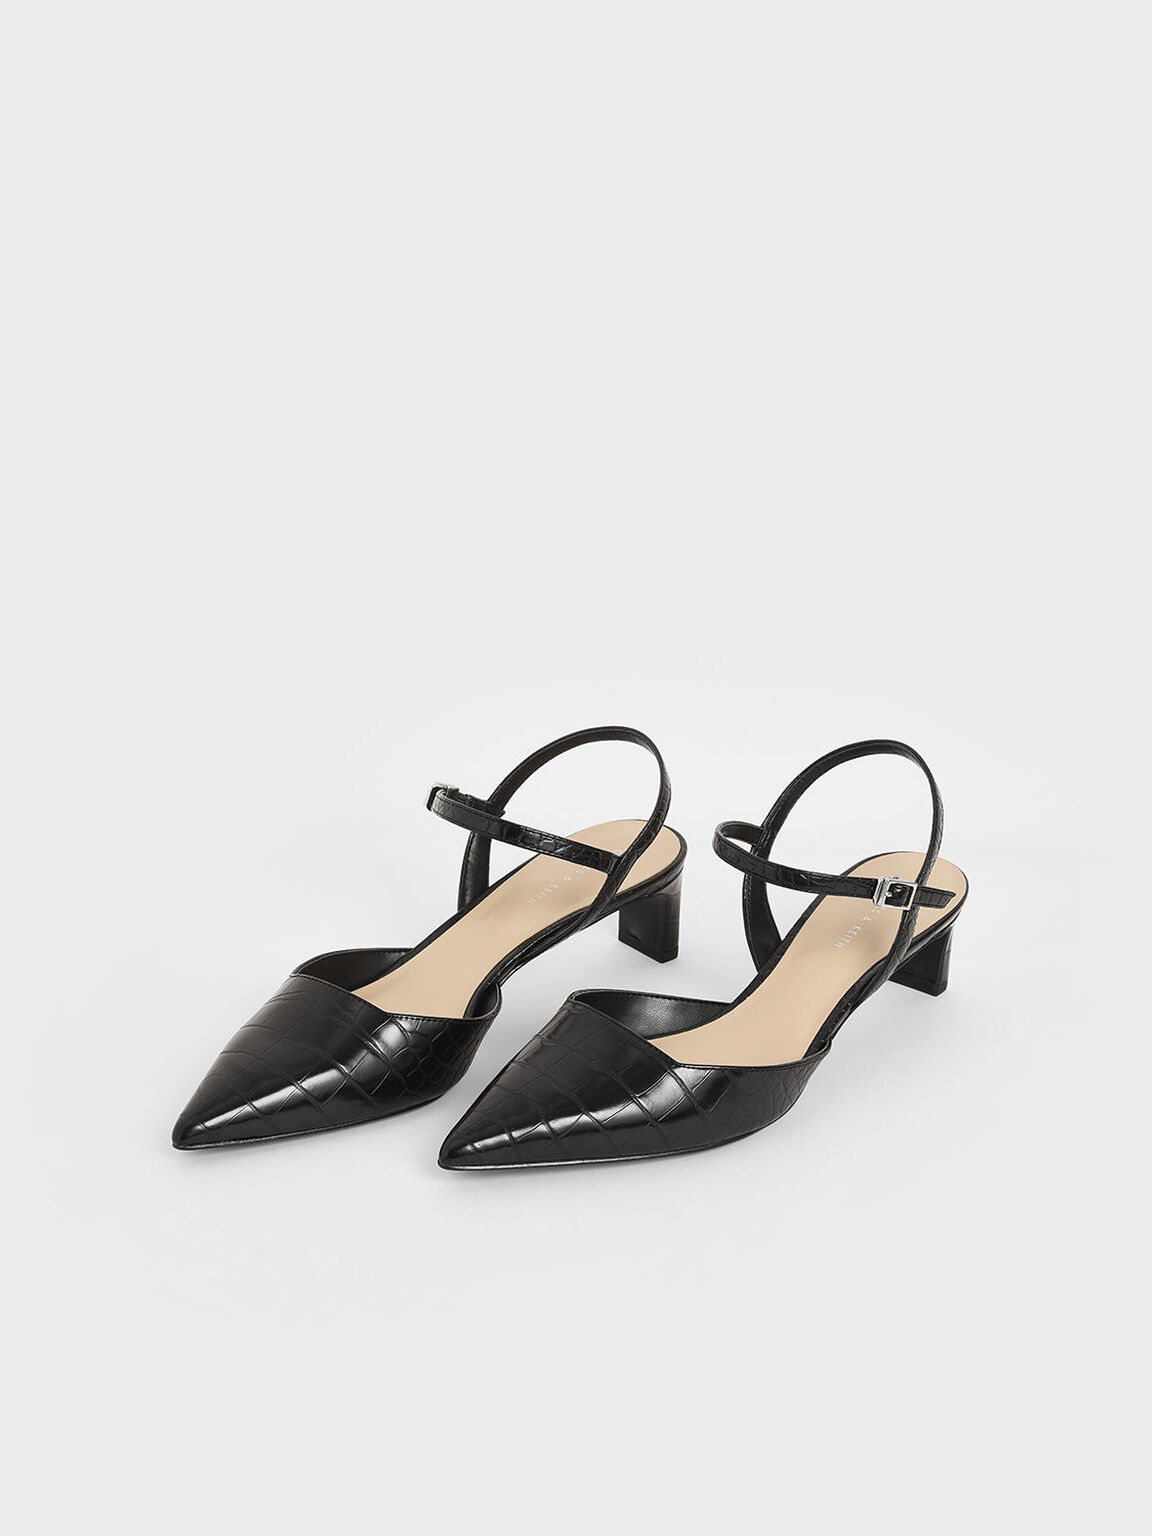 Croc-Effect Ankle Strap Pumps, Black, hi-res